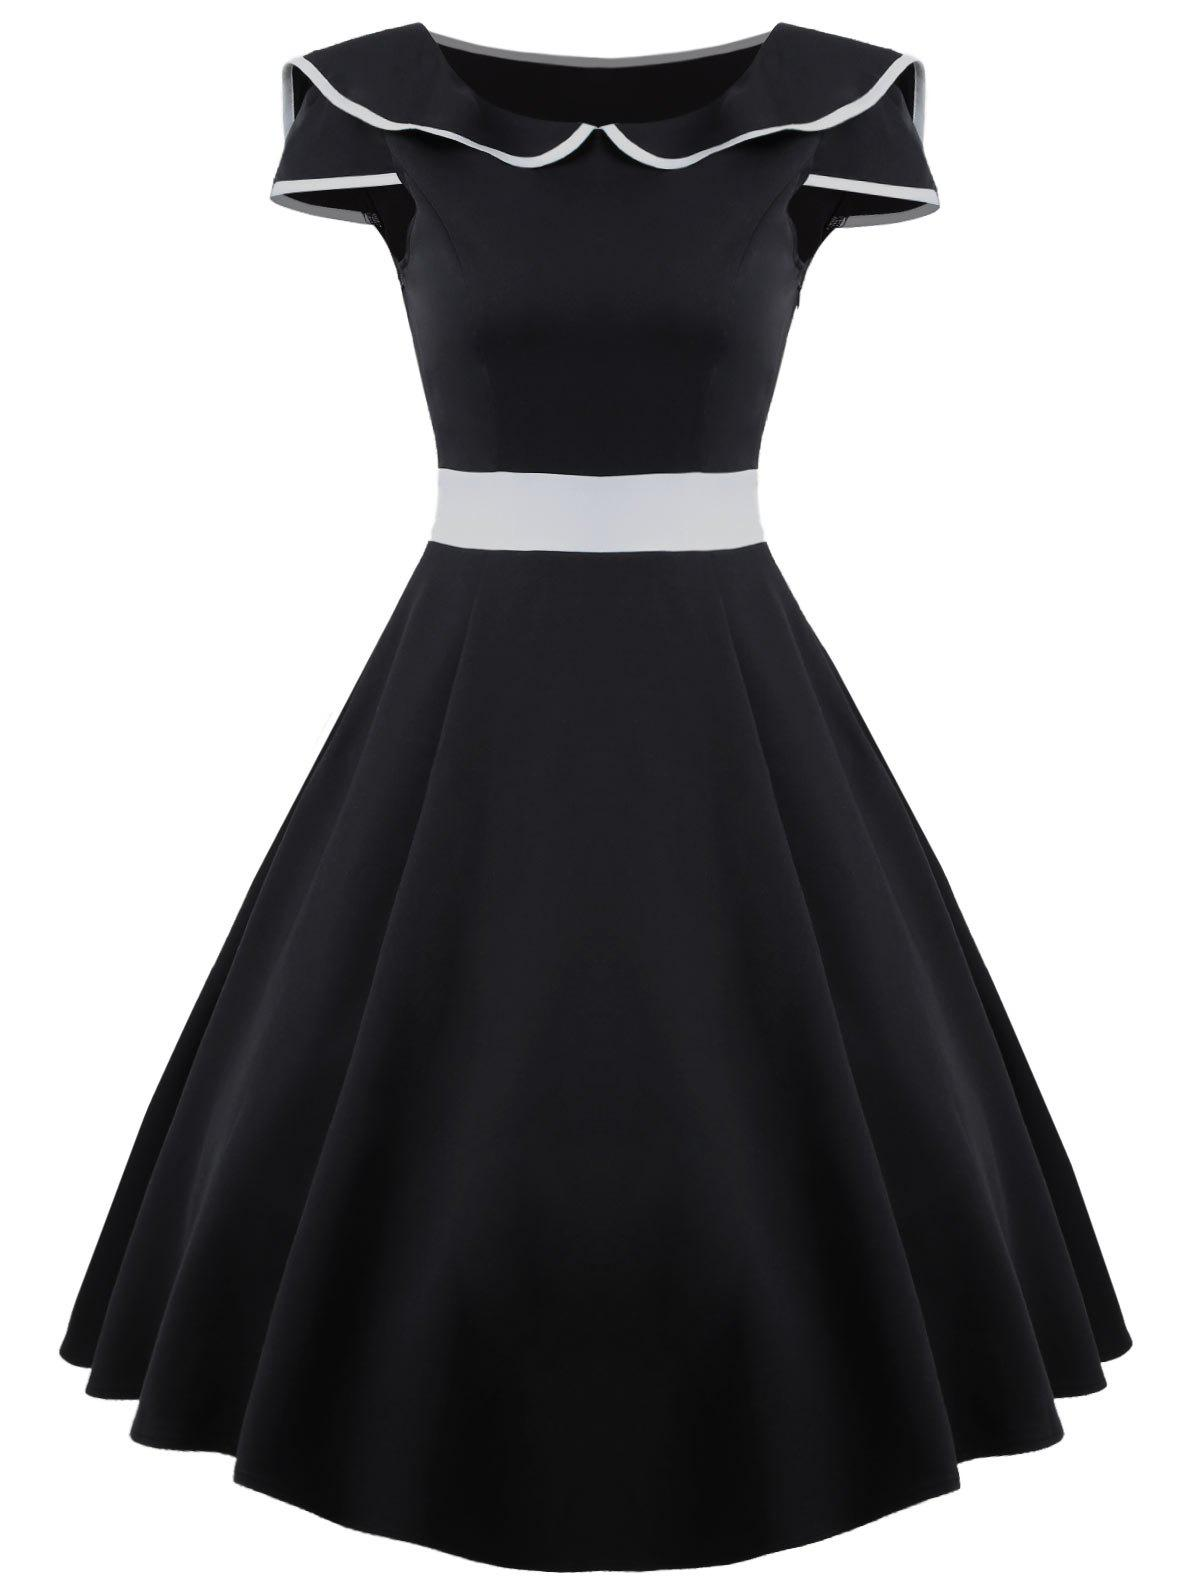 Midi A Line Vintage Skater DressWOMEN<br><br>Size: XL; Color: BLACK; Style: Vintage; Material: Polyester; Silhouette: A-Line; Dresses Length: Mid-Calf; Neckline: Peter Pan Collar; Sleeve Type: Cap Sleeve; Sleeve Length: Short Sleeves; Pattern Type: Others; With Belt: No; Season: Summer; Weight: 0.4000kg; Package Contents: 1 x Dress;